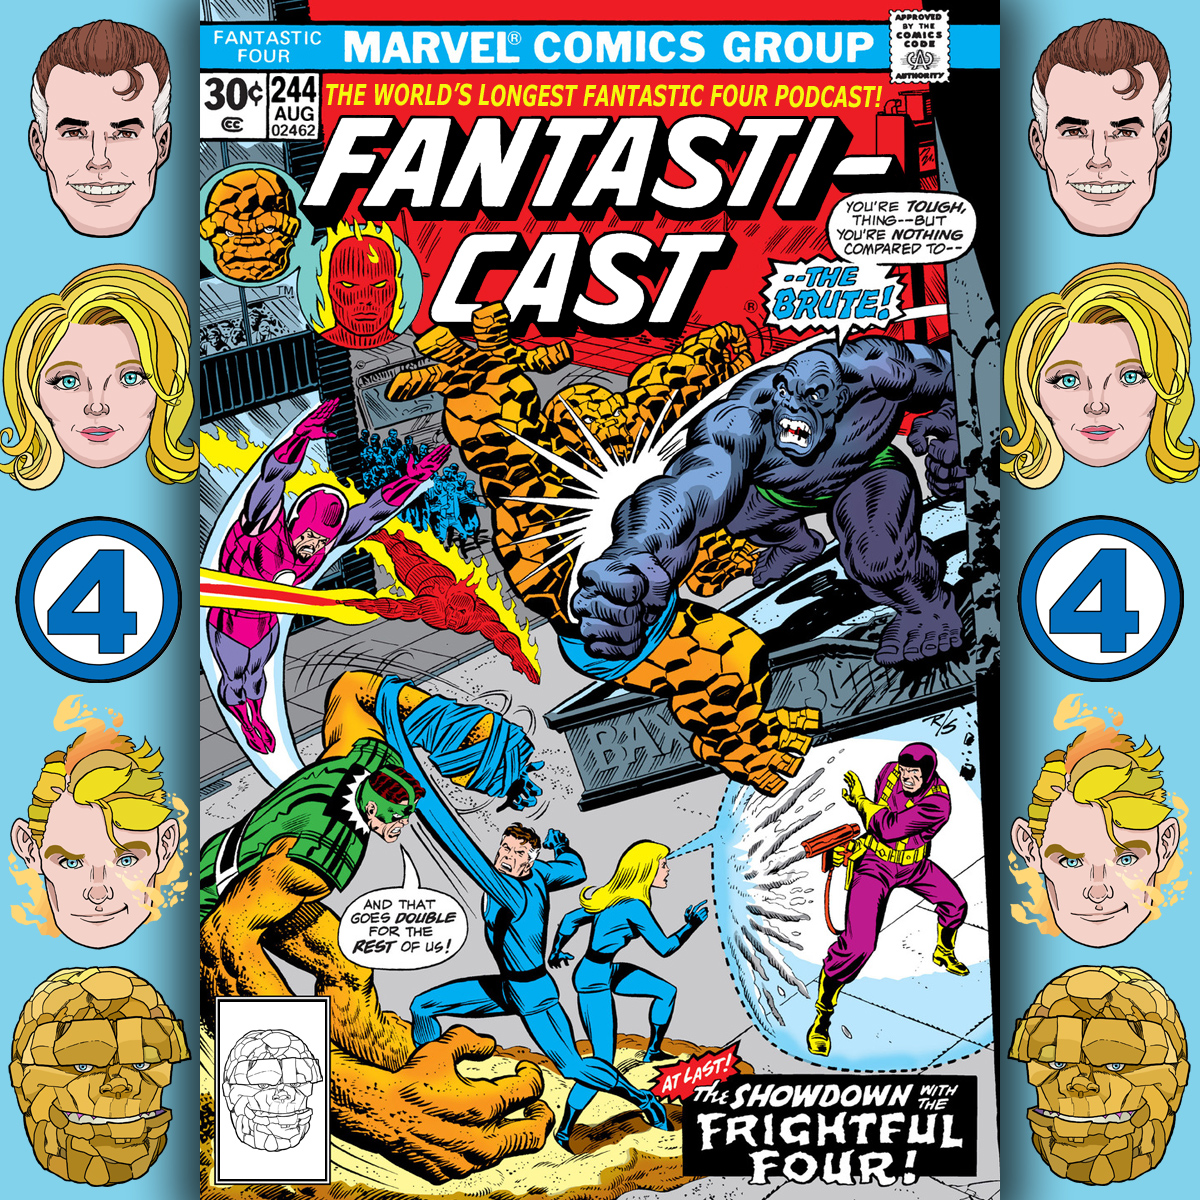 The Fantasticast Episode 244